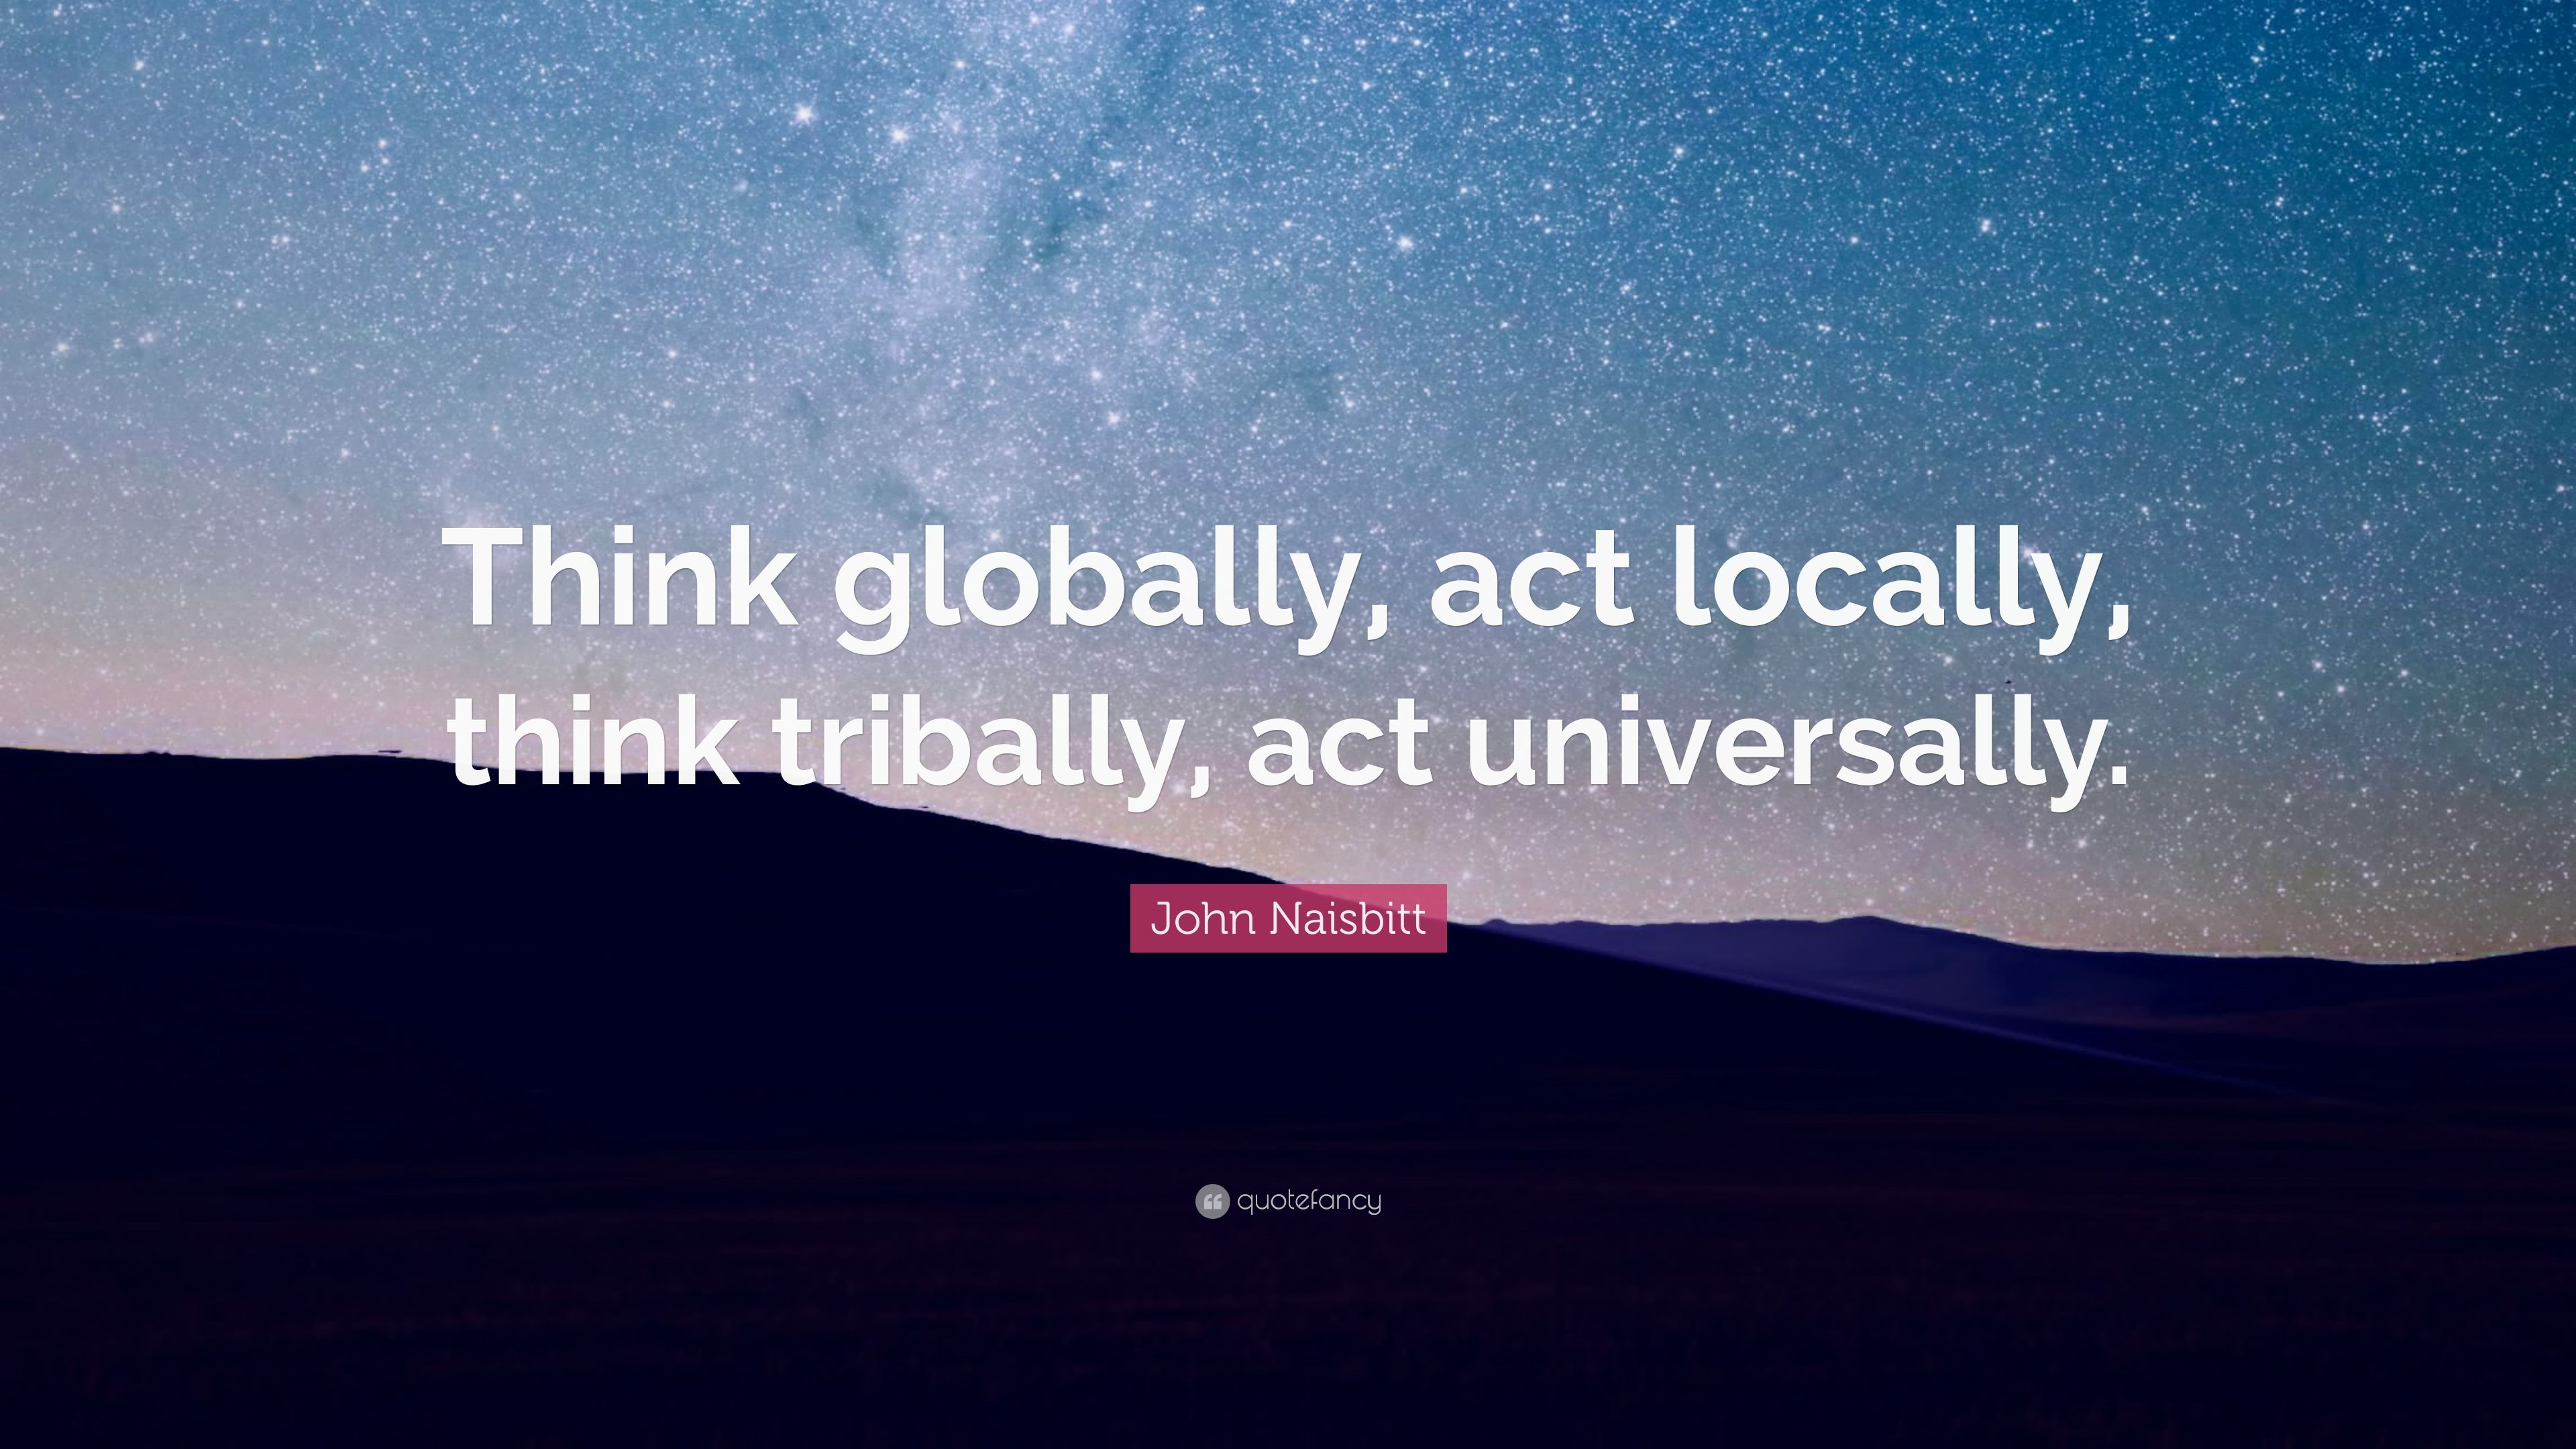 Think globally act locally essay help